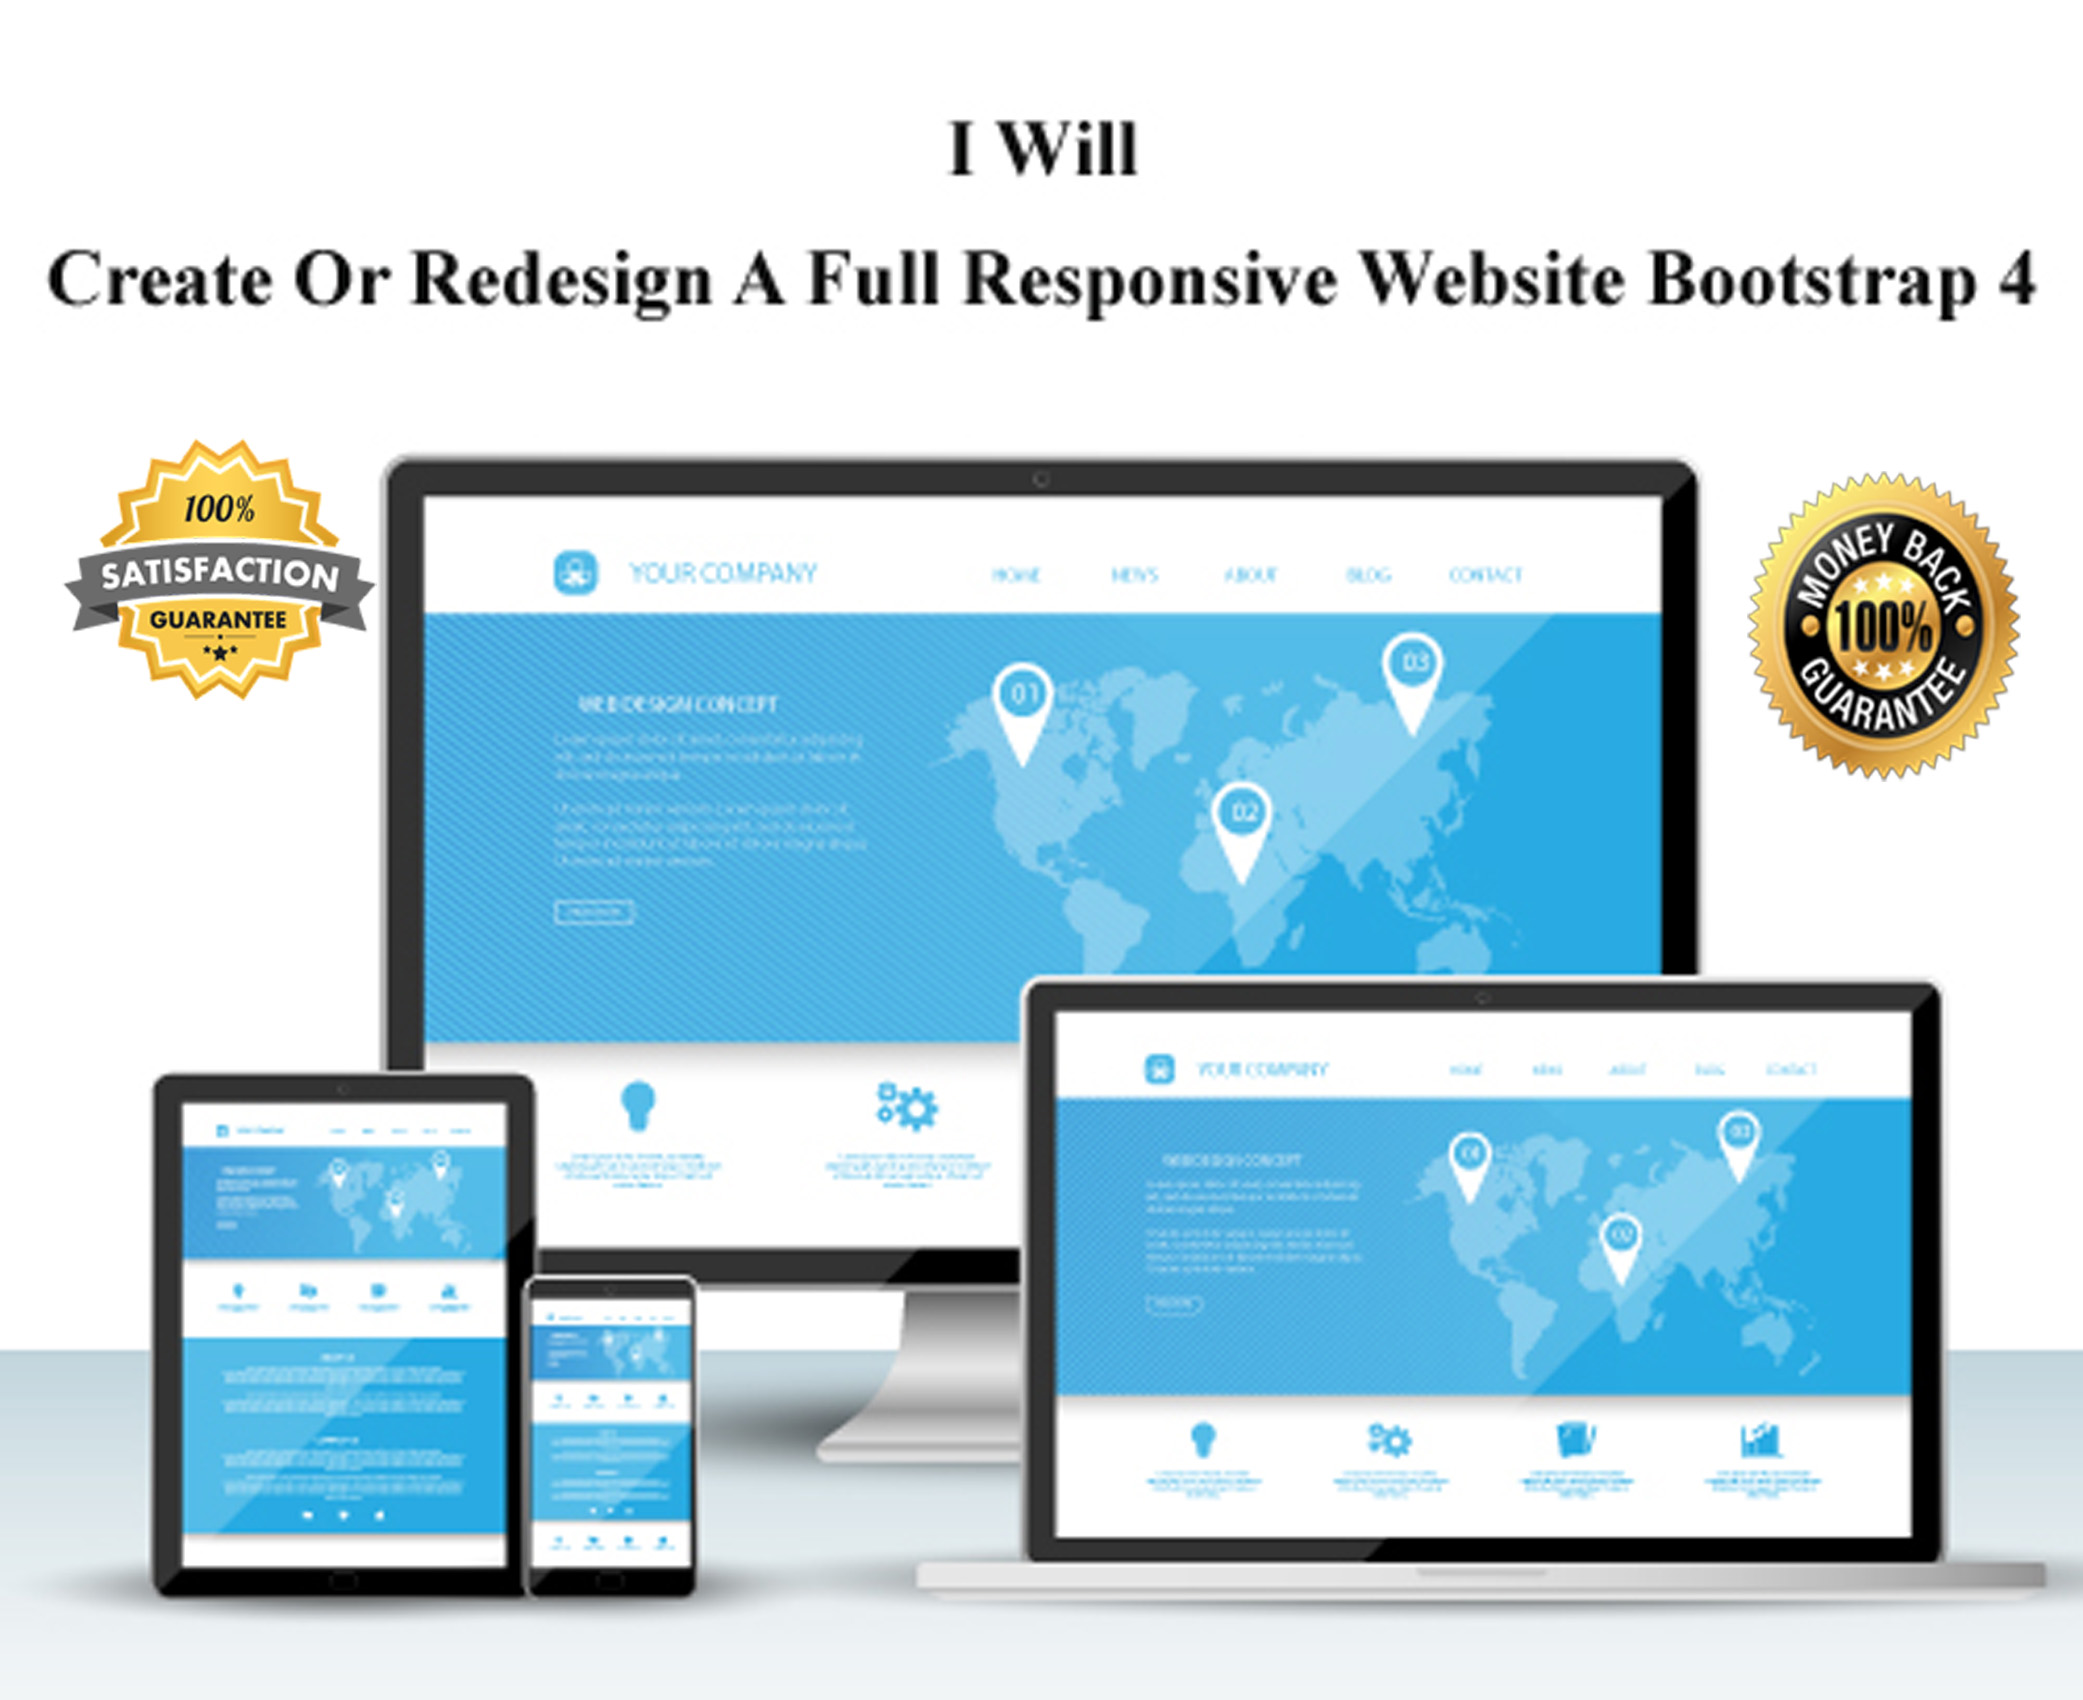 design a full responsive website with bootstrap or ht...